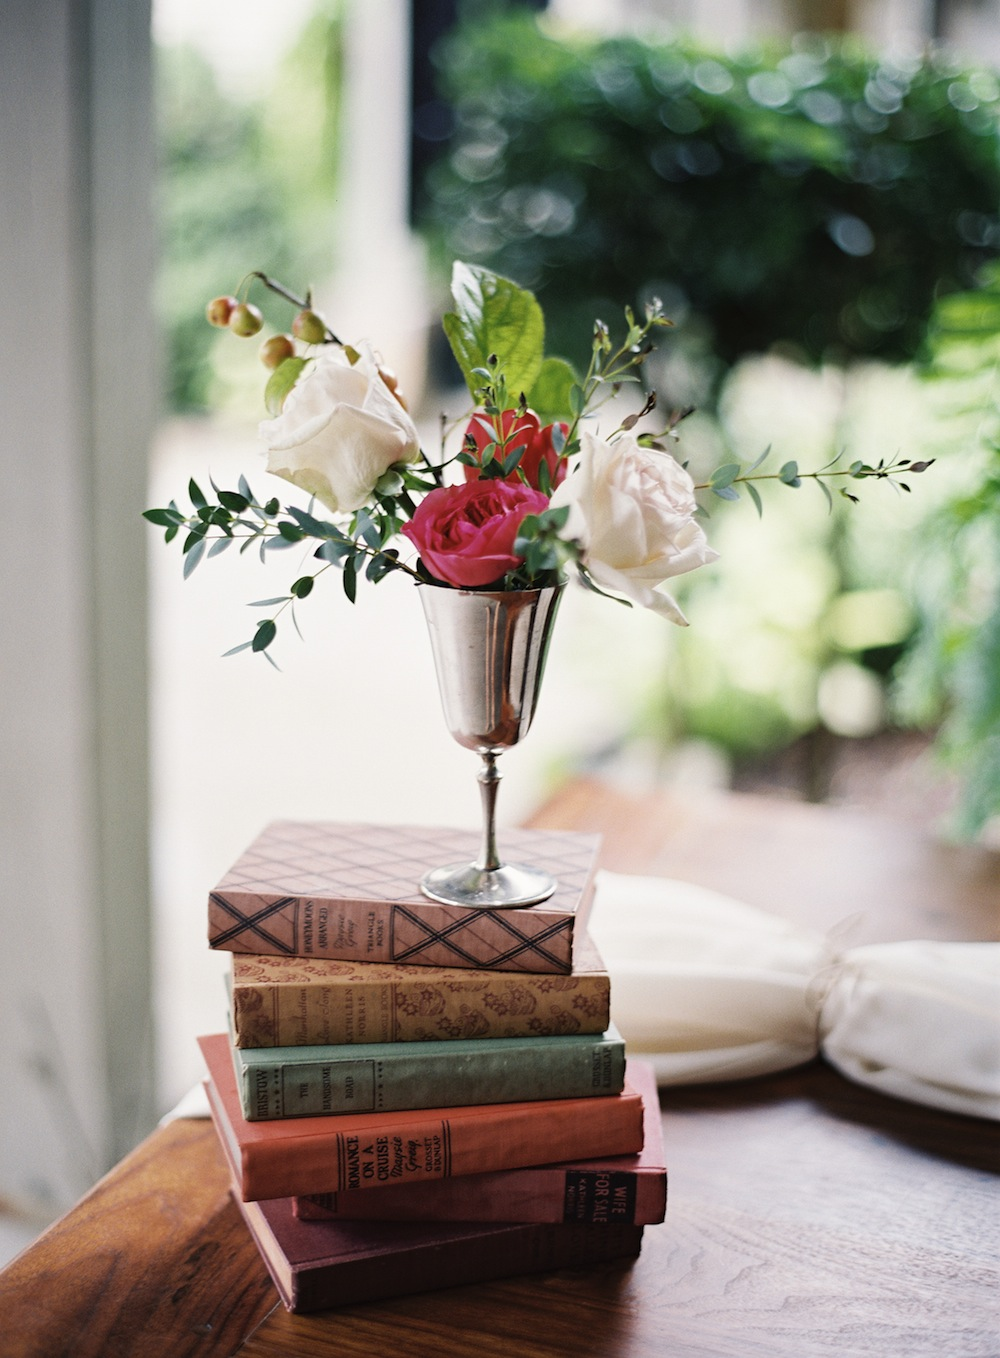 We brought silver vessels for flowers and vintage books for detail shots.